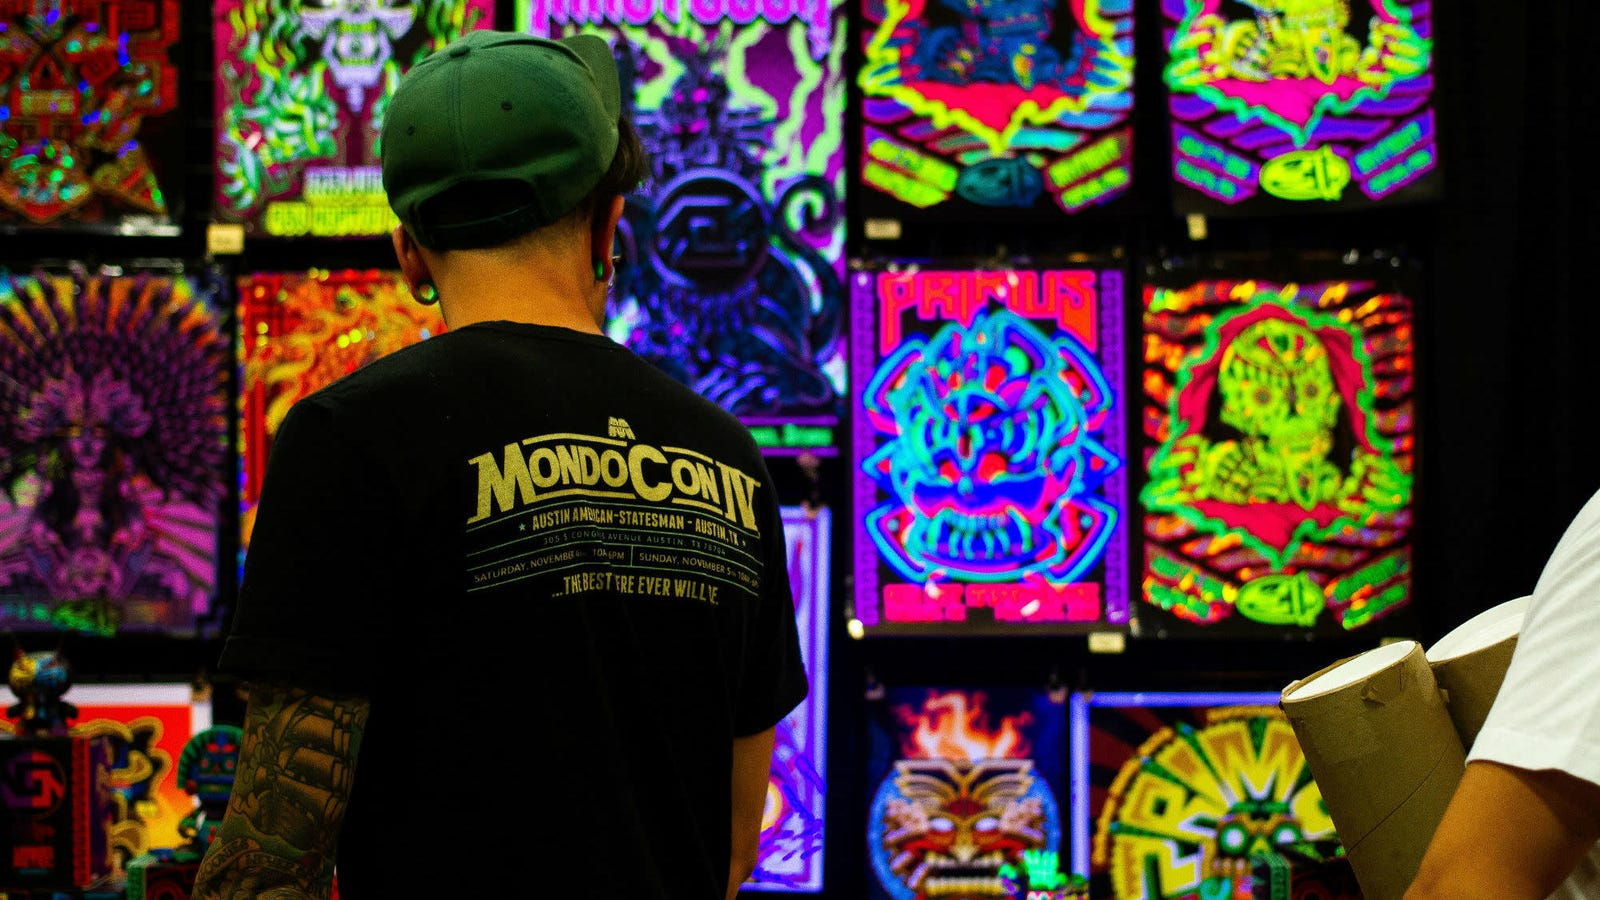 How the Pop Culture Event MondoCon Has Changed, and So Have I